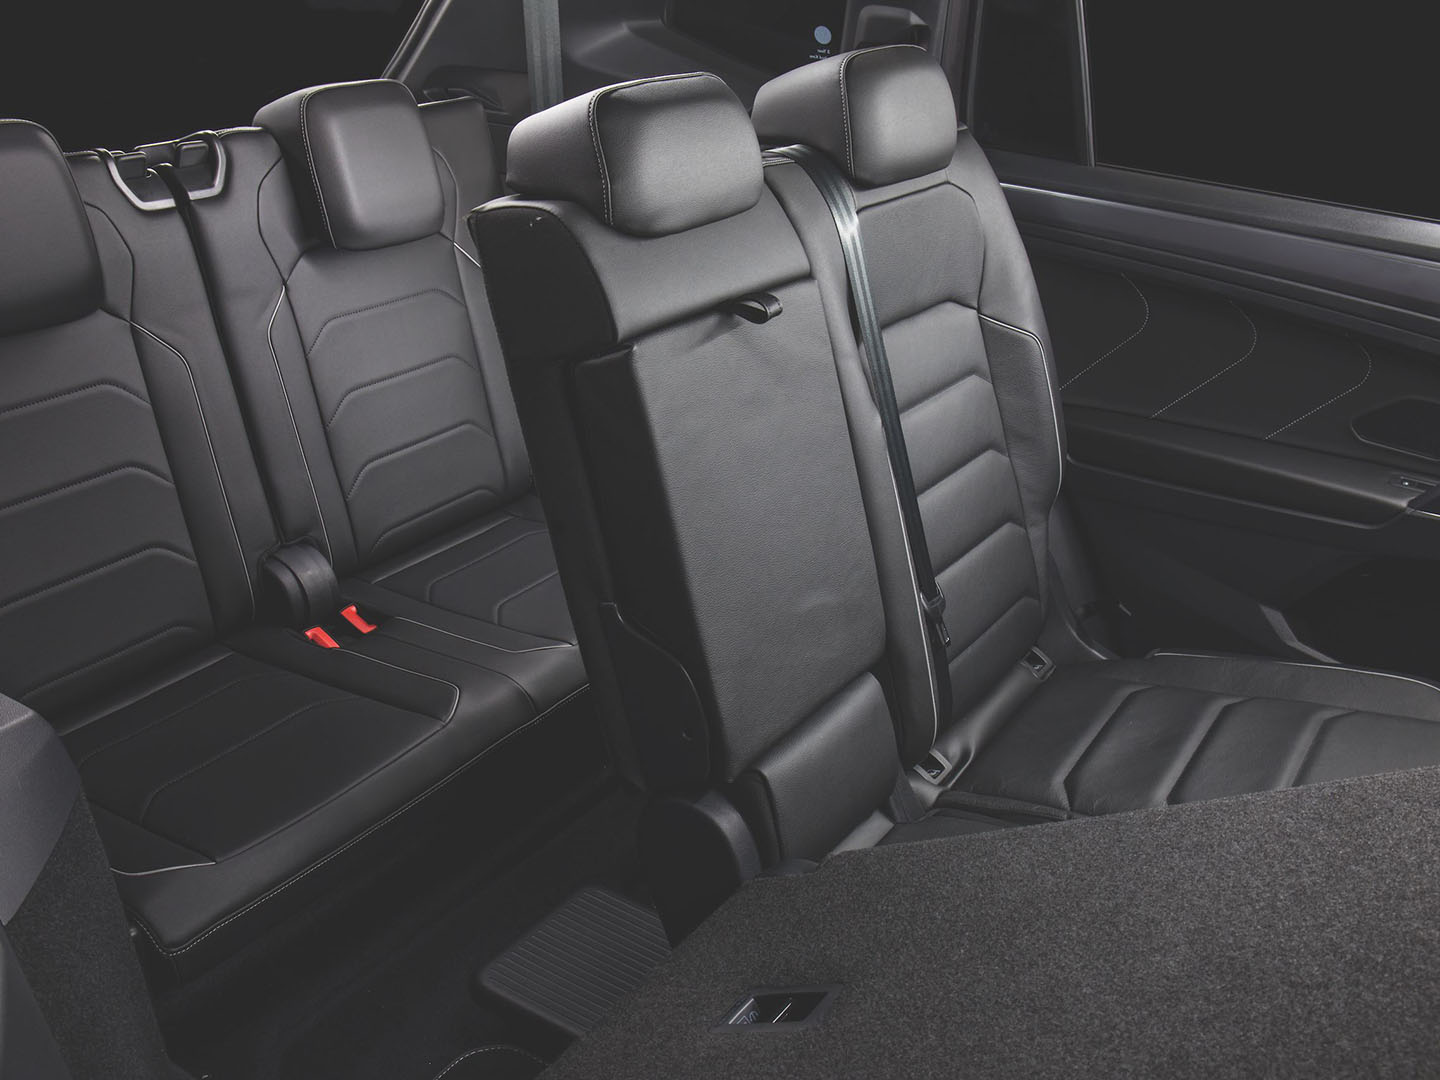 Absolute comfort Premium upholstery Image